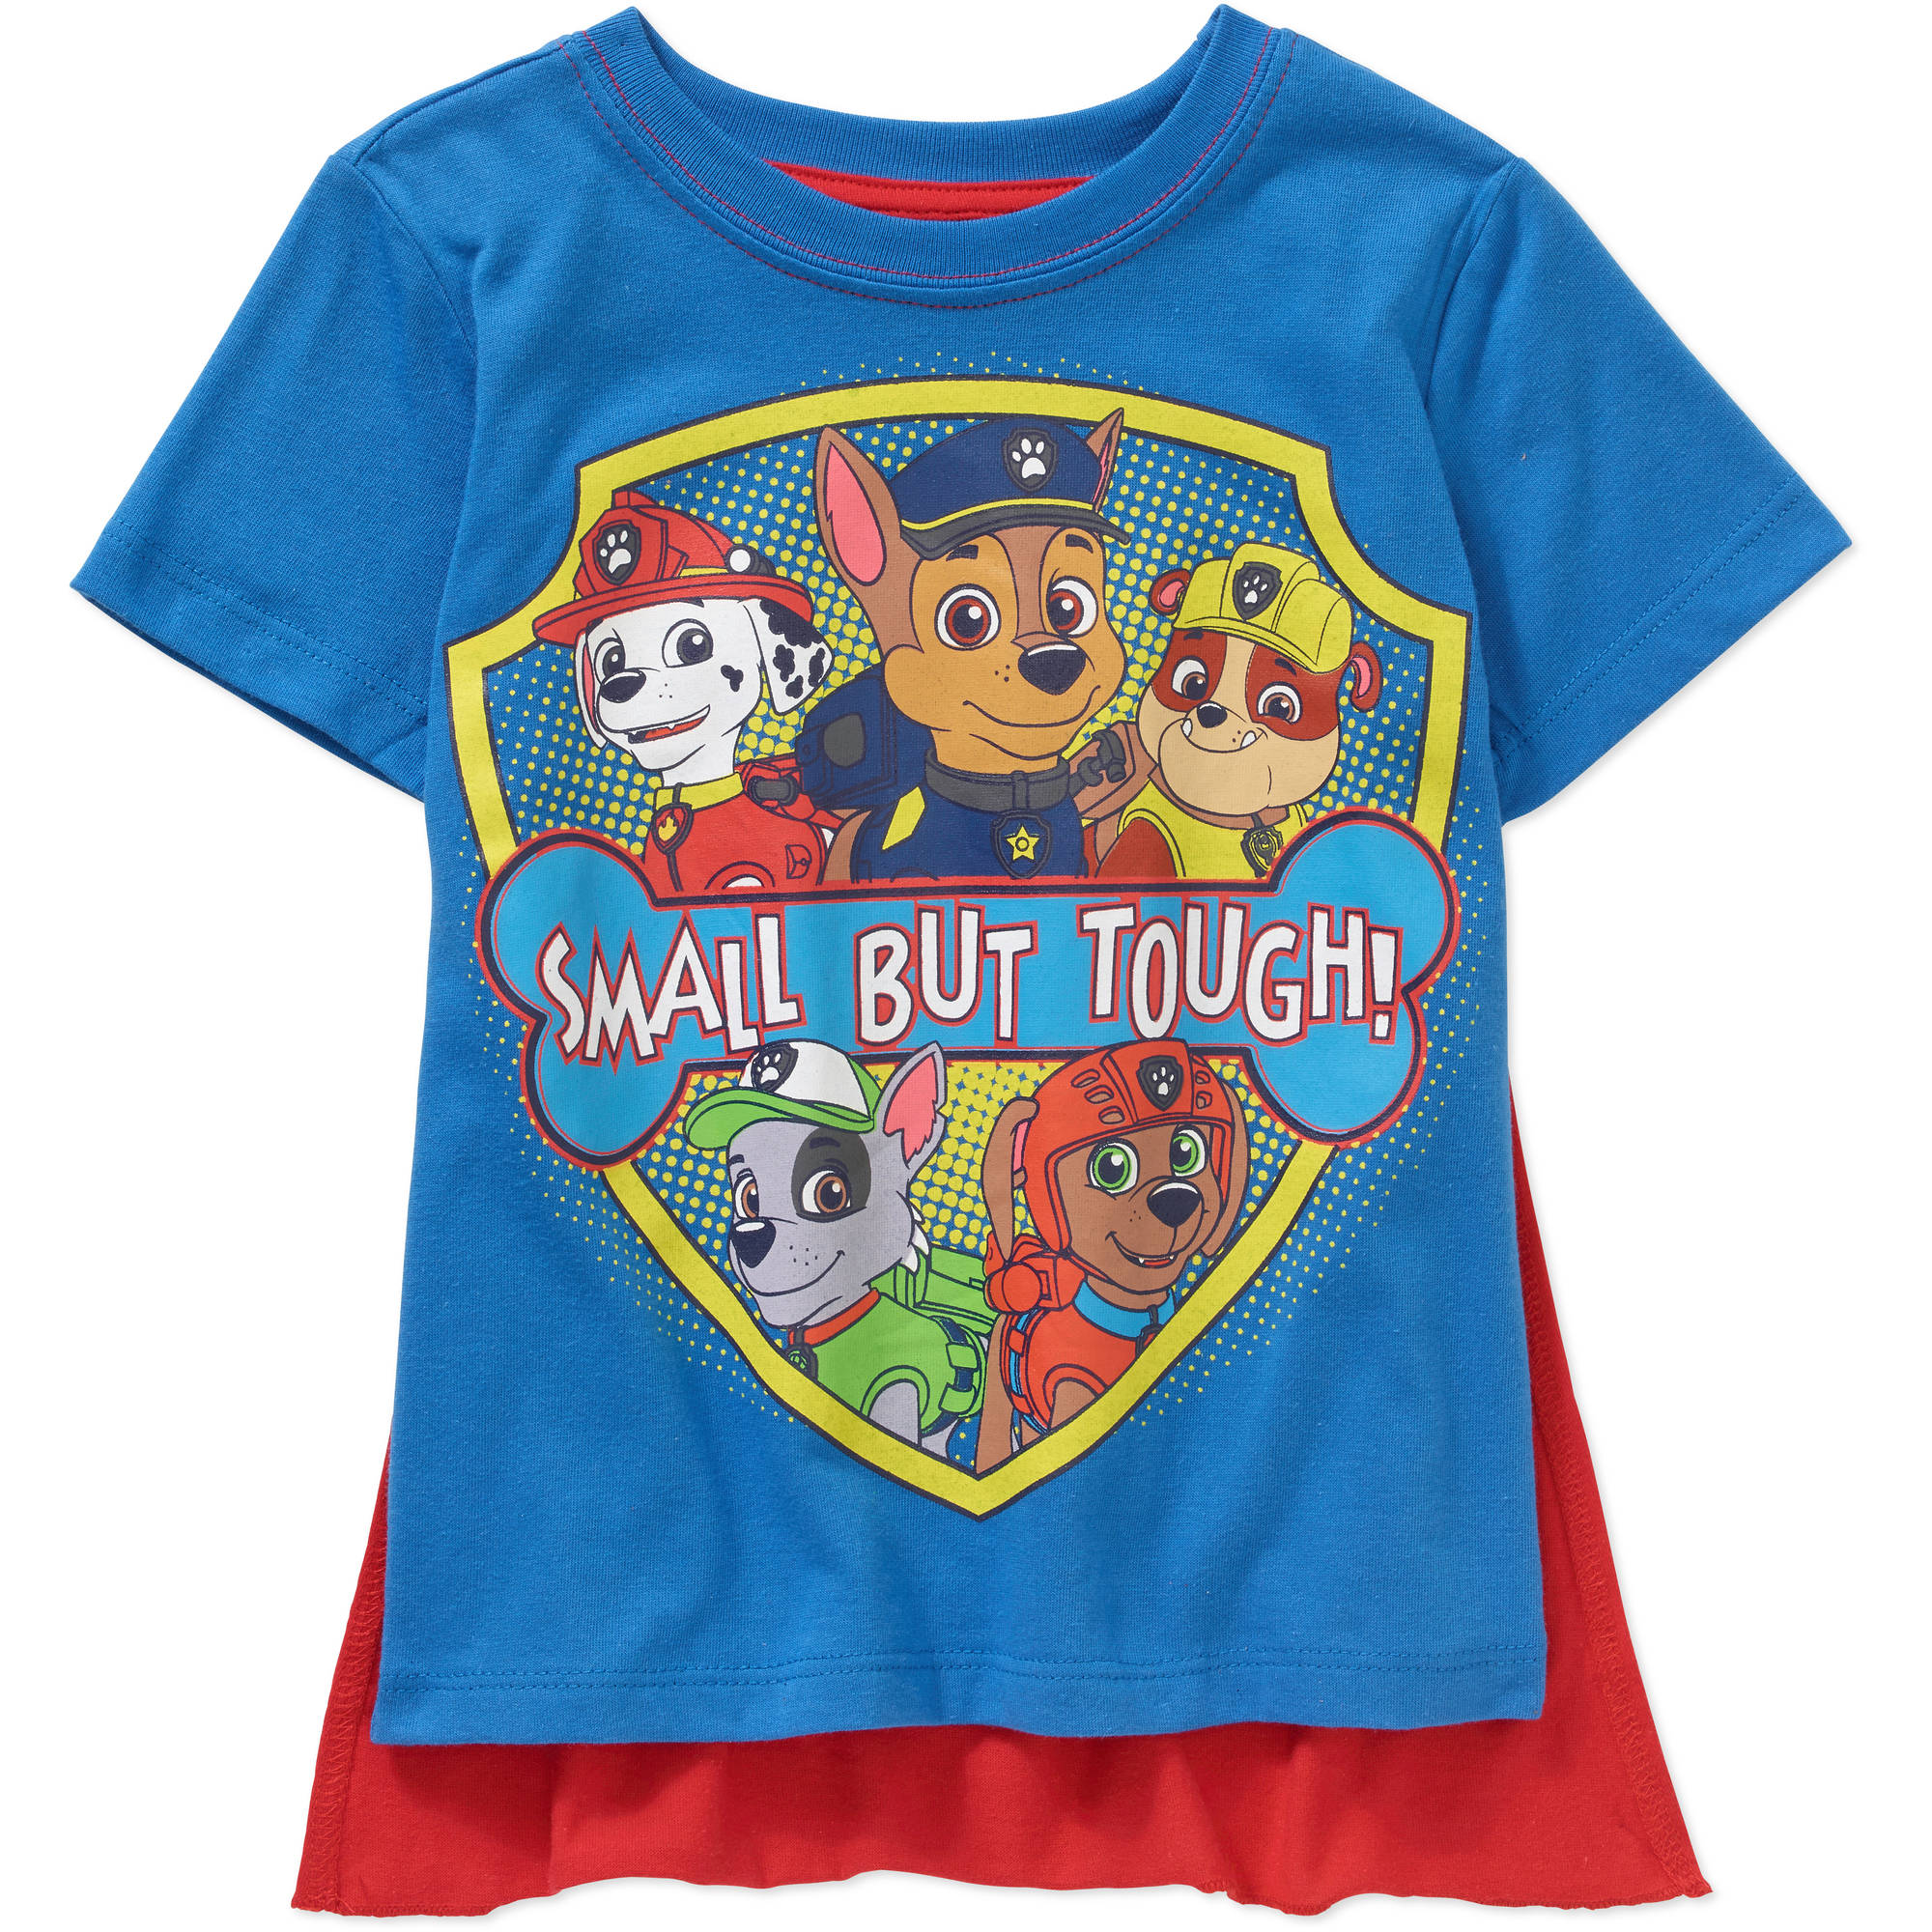 Nickelodeon Paw Patrol Toddler Boy Small But Tough Short Sleeve Caped Tee